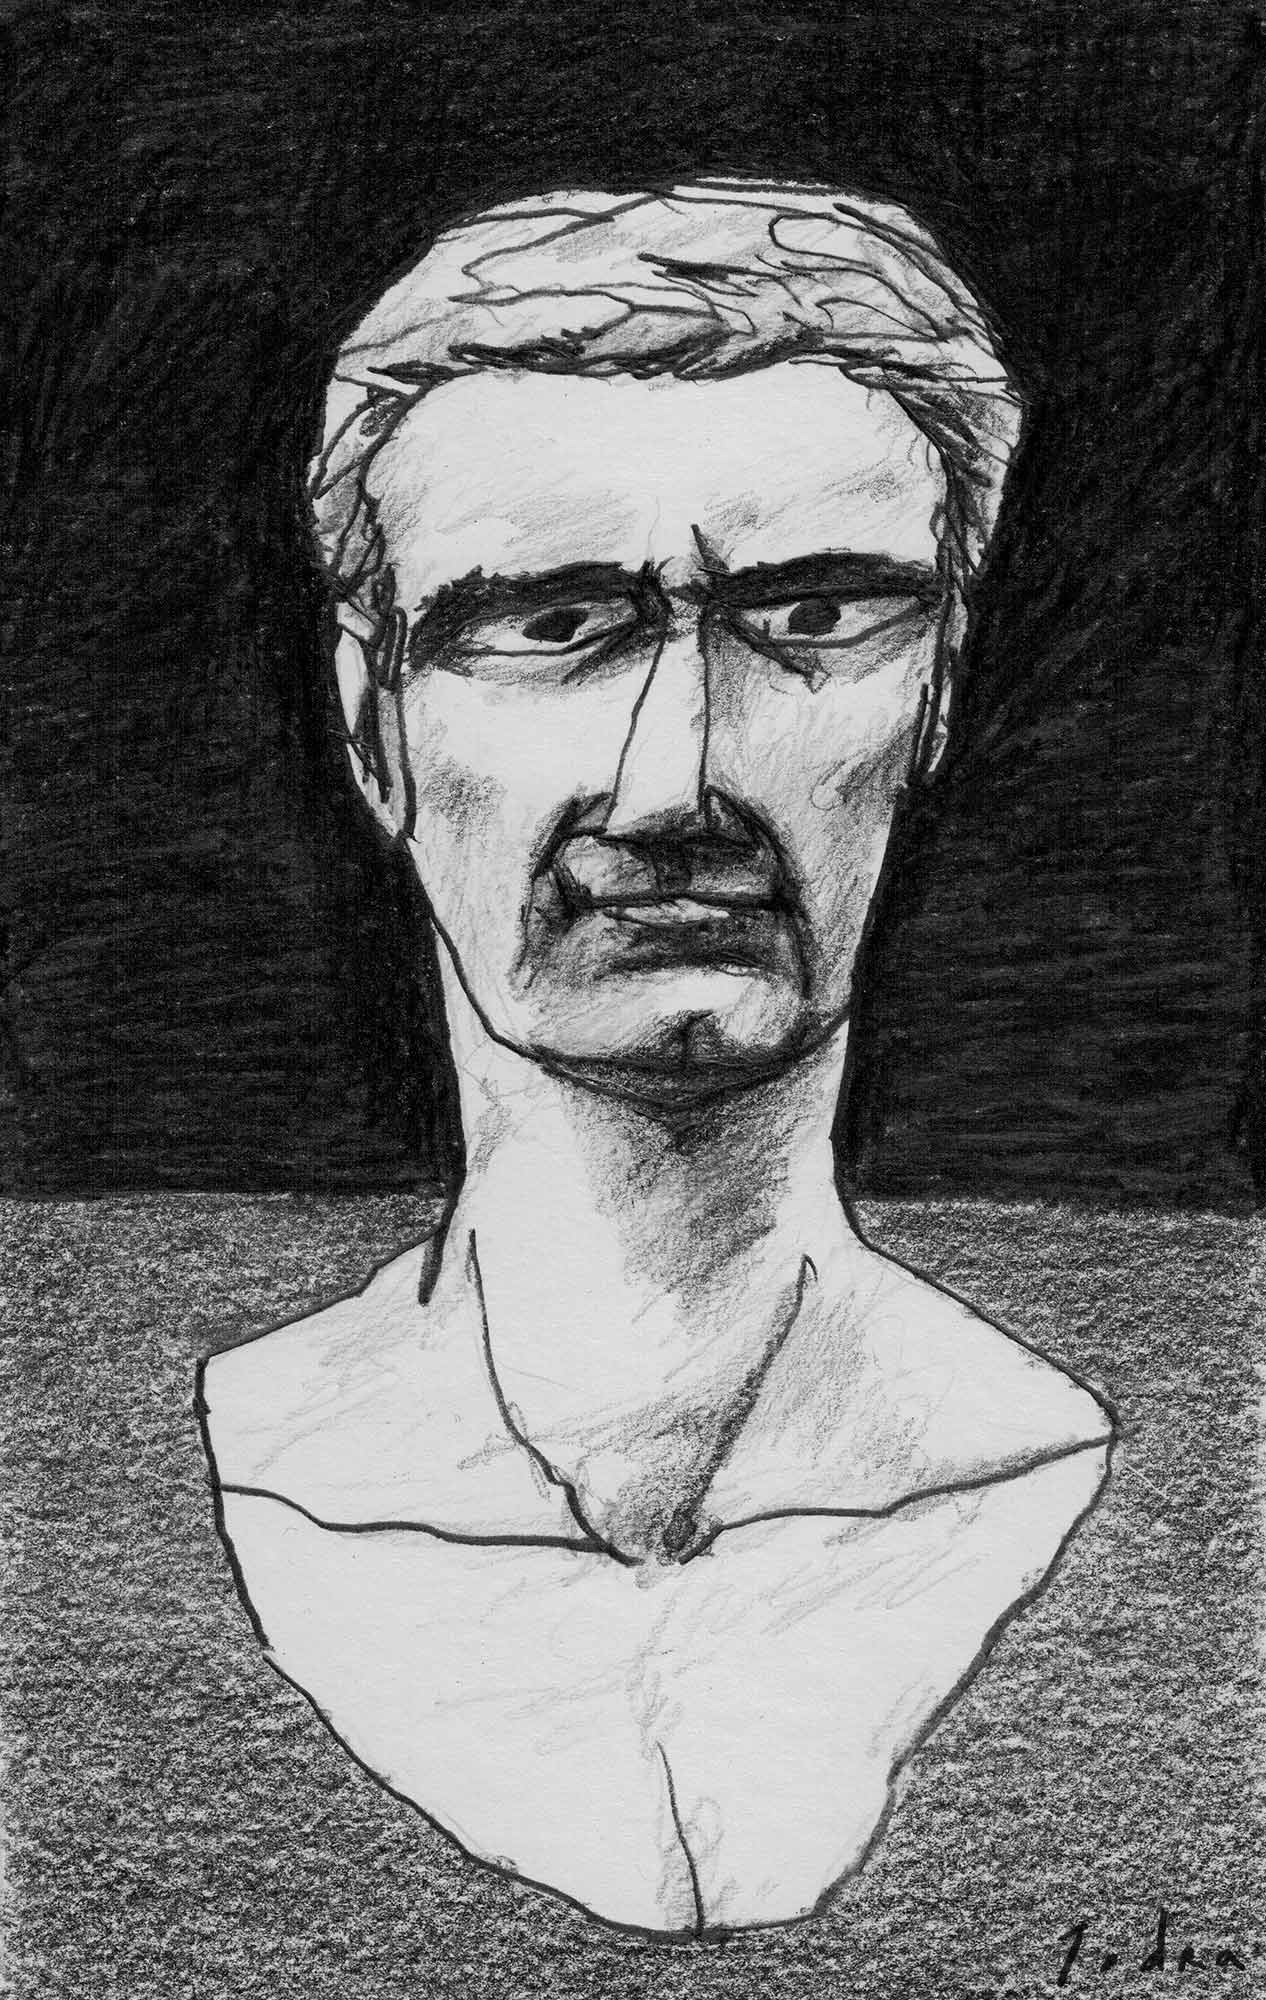 Tiberius portrait. Drawing. Mario Jodra 2020